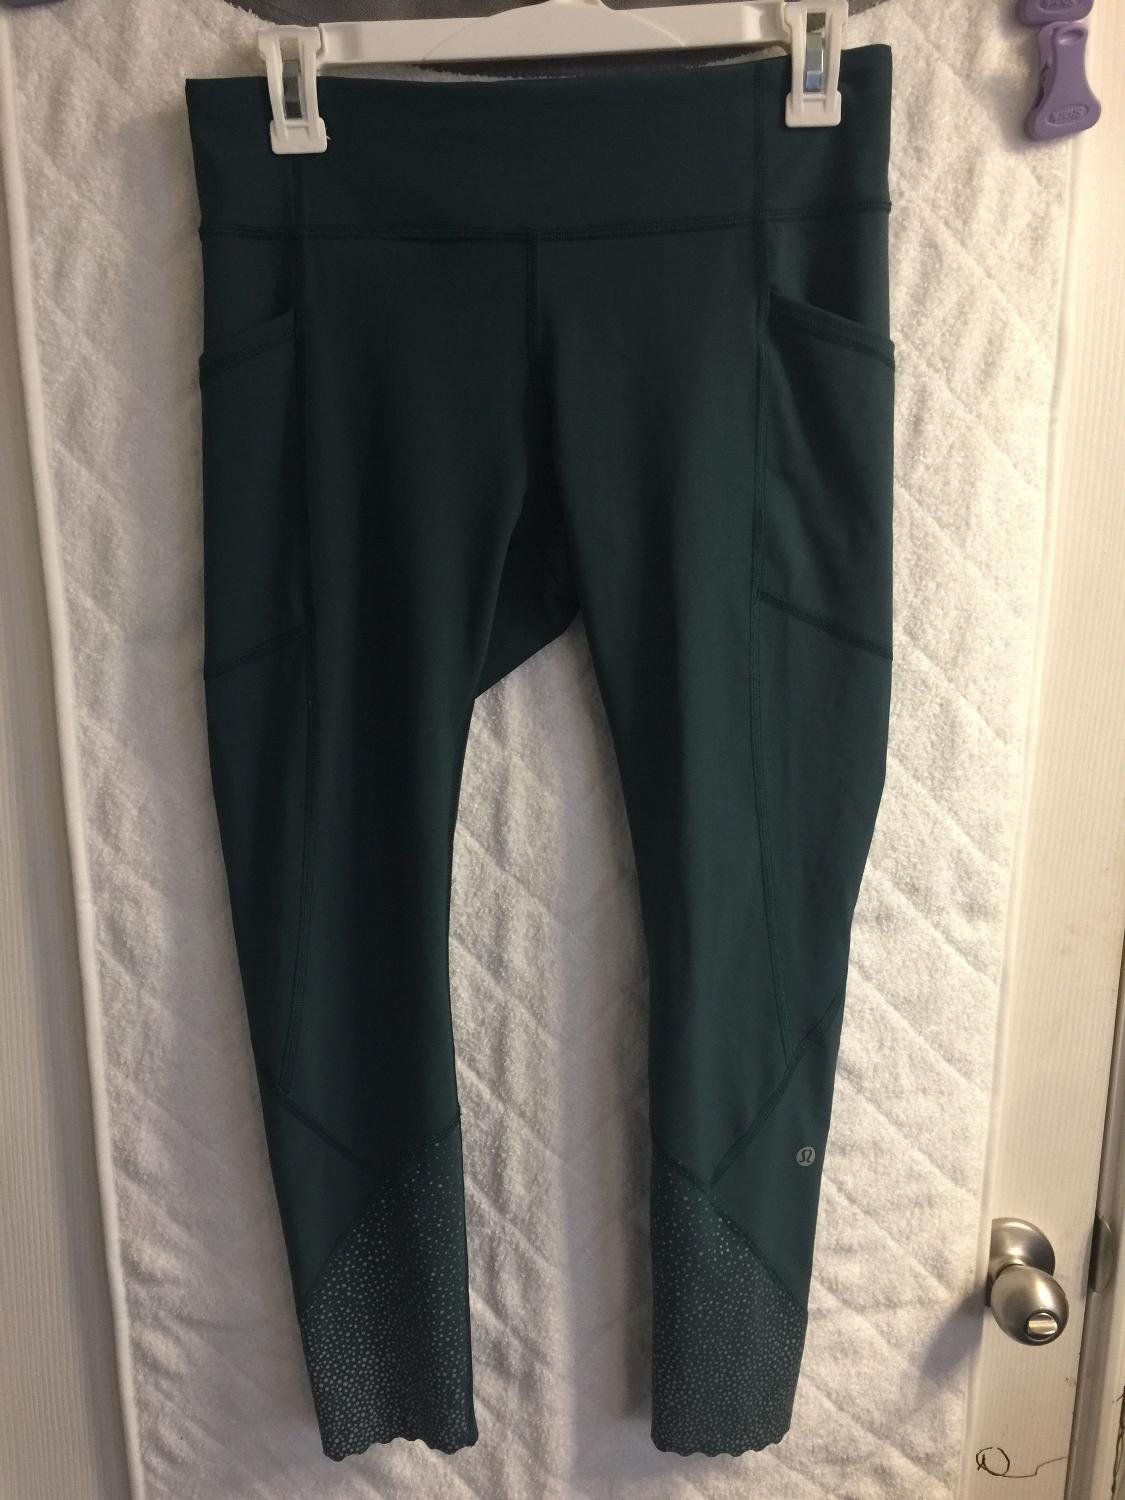 Find great deals on eBay for size 8 waist inches. Shop with confidence. Skip to main content. eBay: New Adidas Neo Ladies Black Skinny Jeans Size 8 25 inch Waist See more like this. WOMEN'S BLACK JEANS SIZE 8 UK 30 INCH WAIST BLACK DISTRESSED REG FIT JEANS. New (Other) $ From United Kingdom.